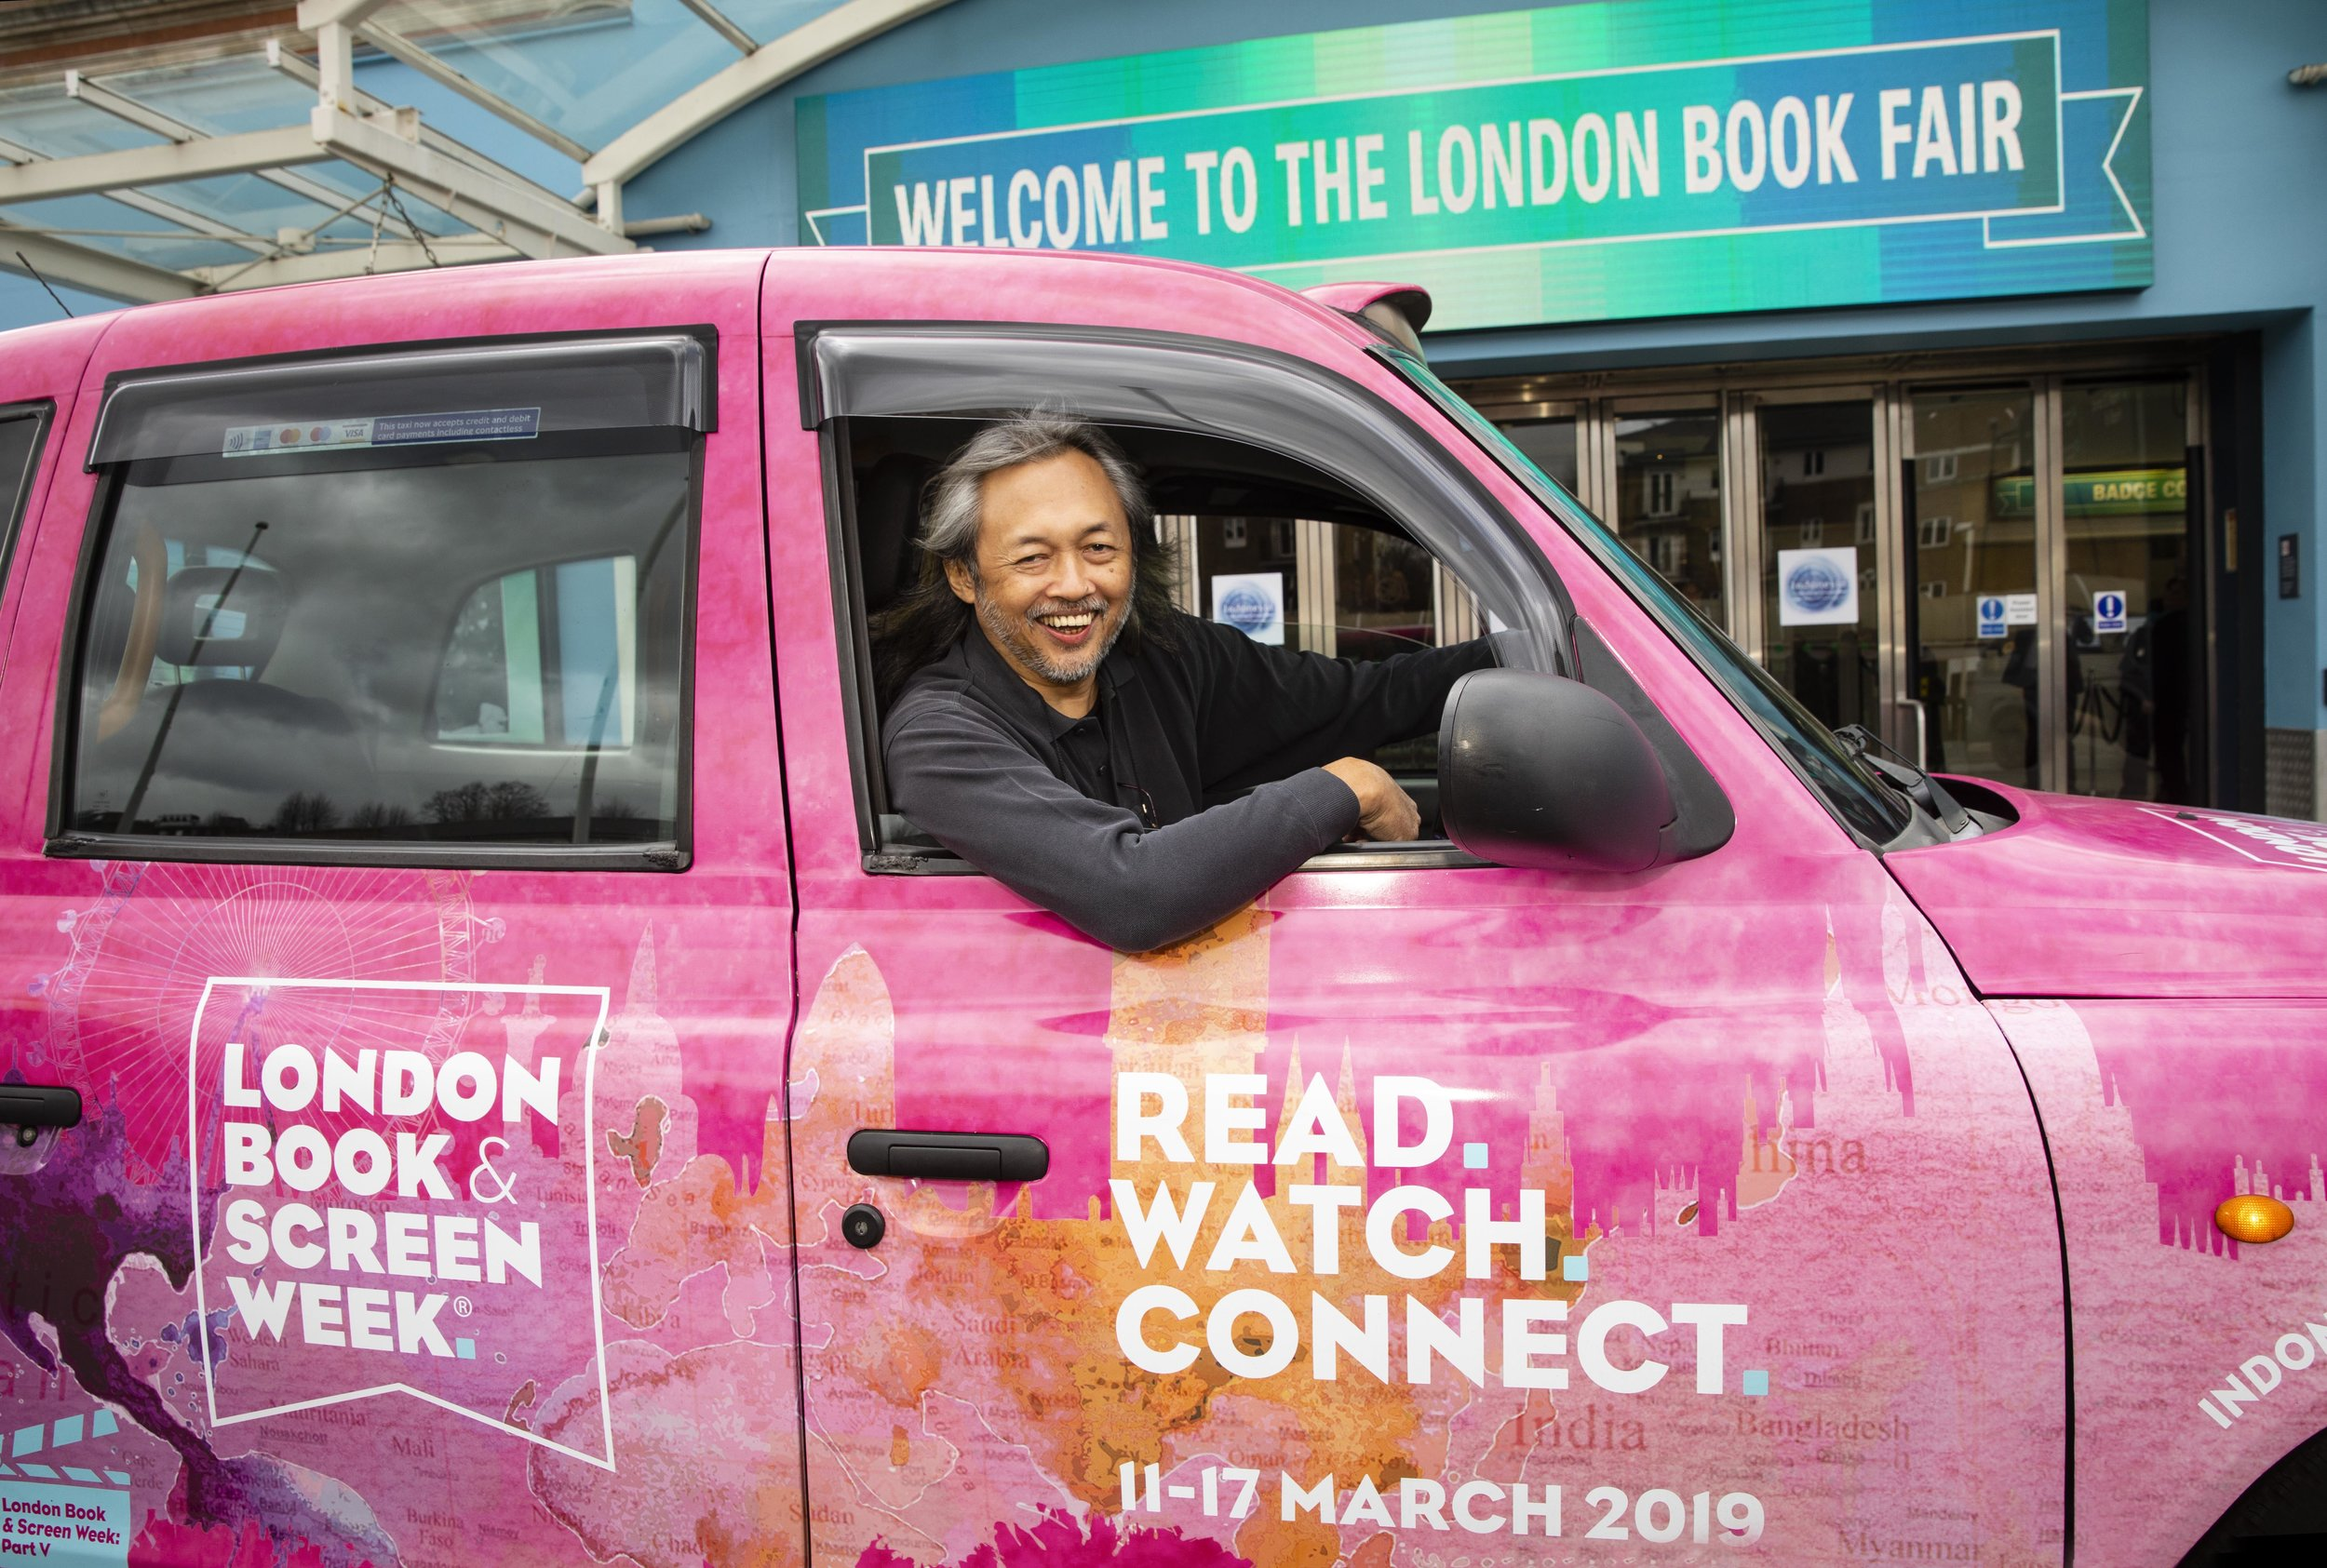 Seno Gumira Ajidarma was one of the featured writers at the Author of the Day program of this year's London Book Fair, which put some of the most successful authors into the spotlight to celebrate their work. (Photo courtesy of the London Book Fair)